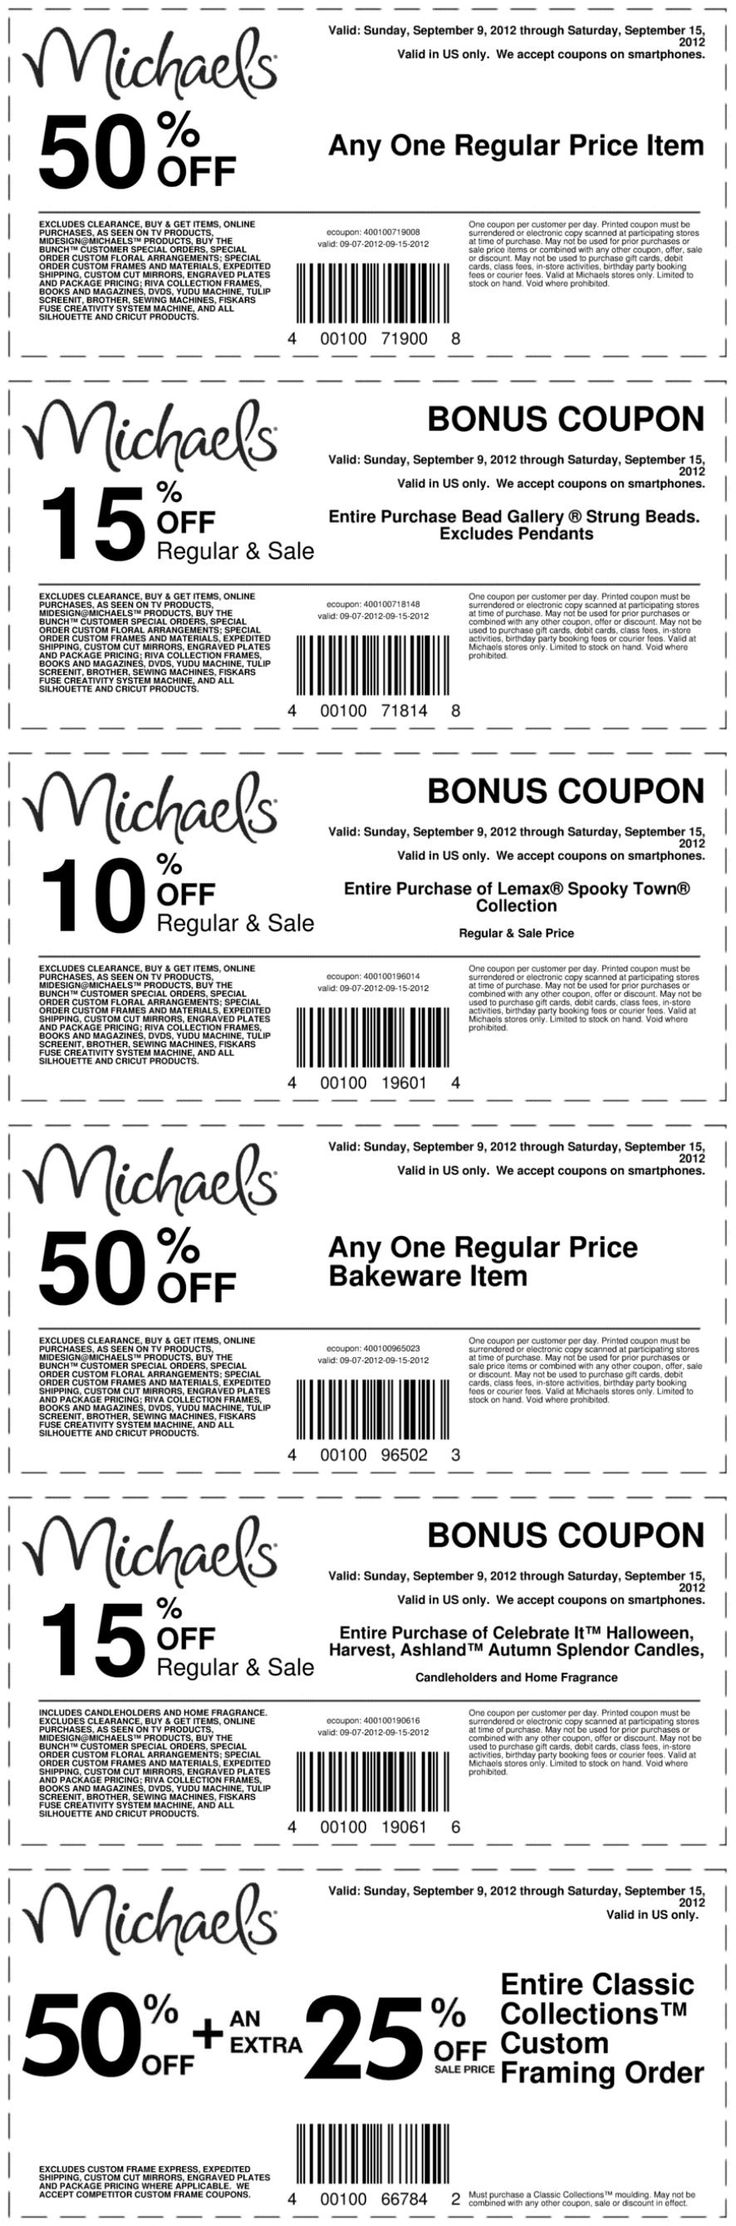 Michaels Coupon Promo Code From The Coupons App Off Everything And More At Crafts December